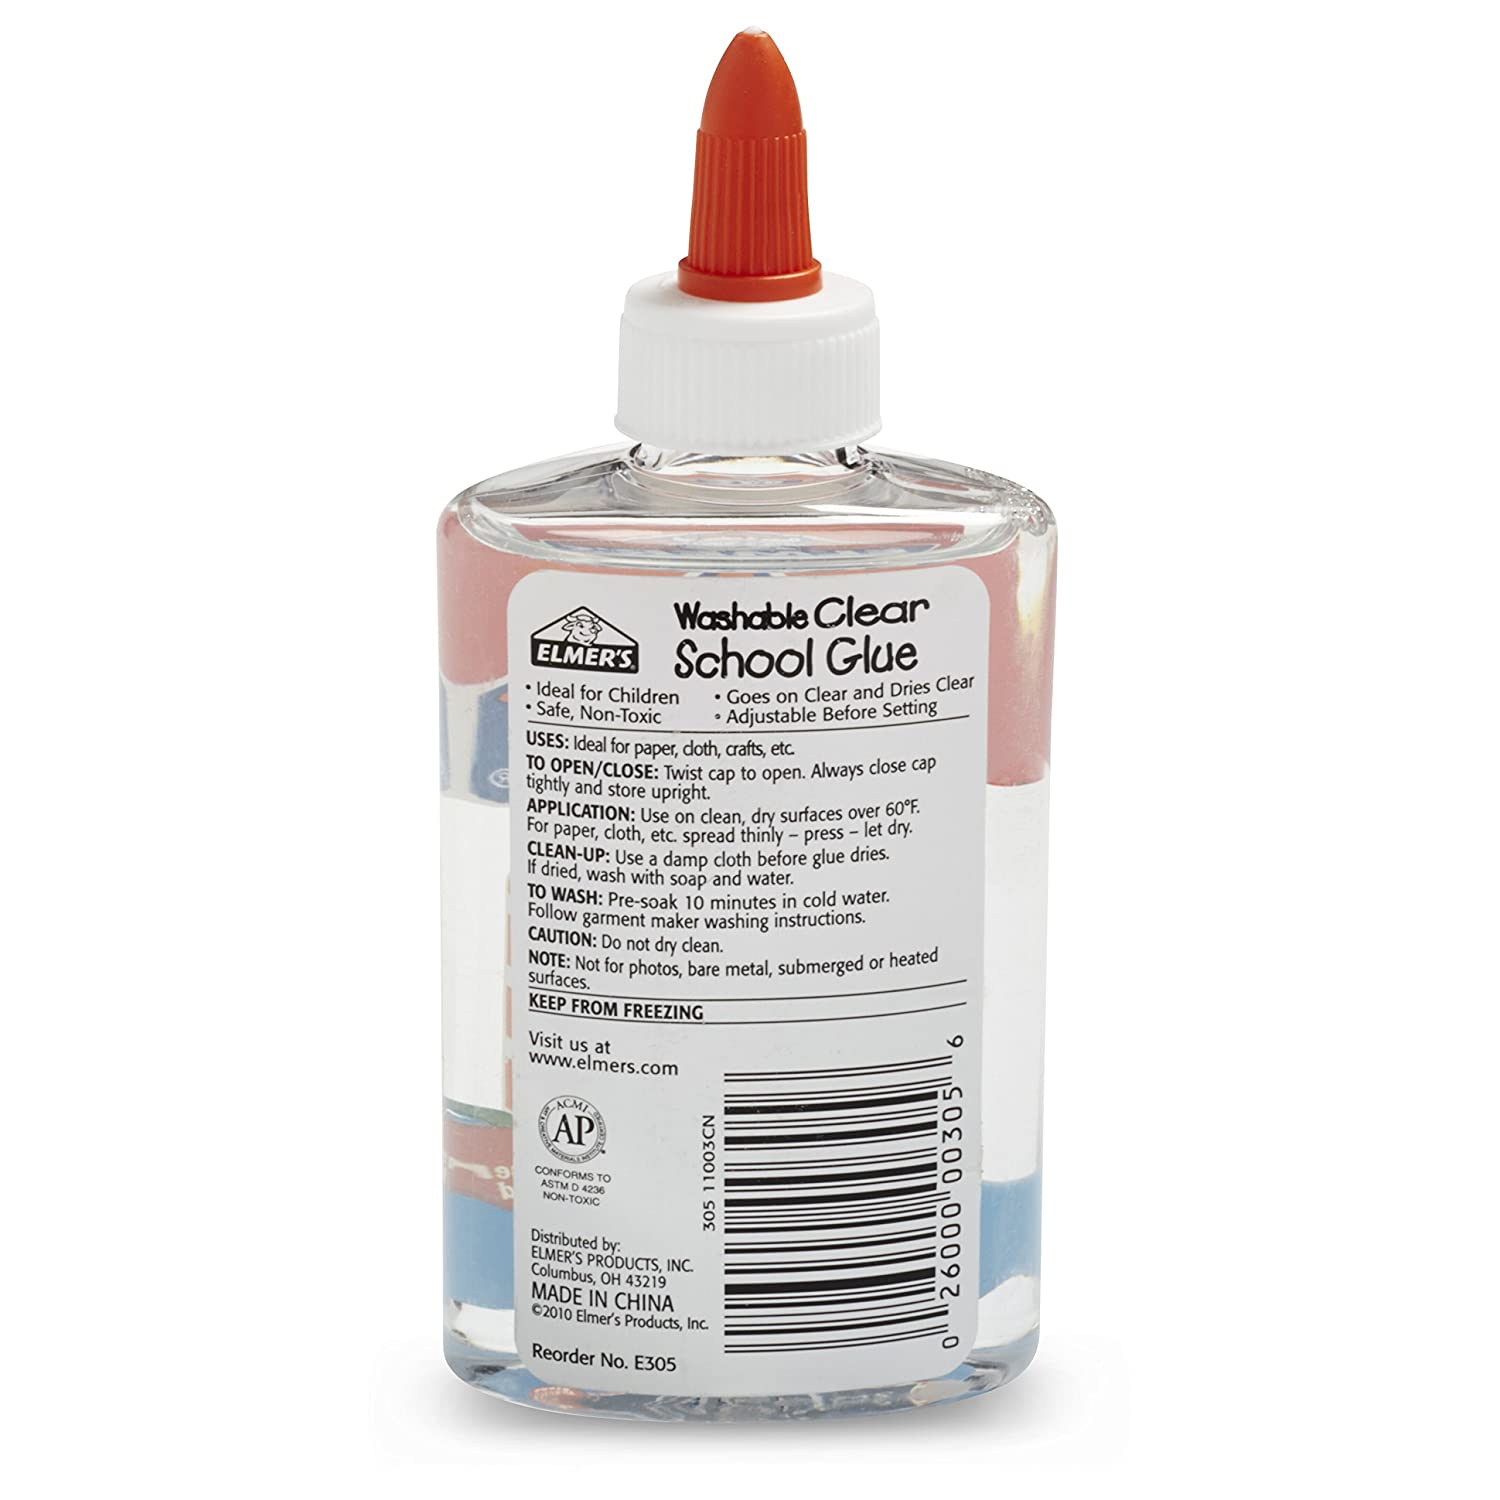 Amazon : Elmer's Liquid School Glue, Clear, Washable, 5 Ounces, 1 Count  : General Purpose Glues : Office Products